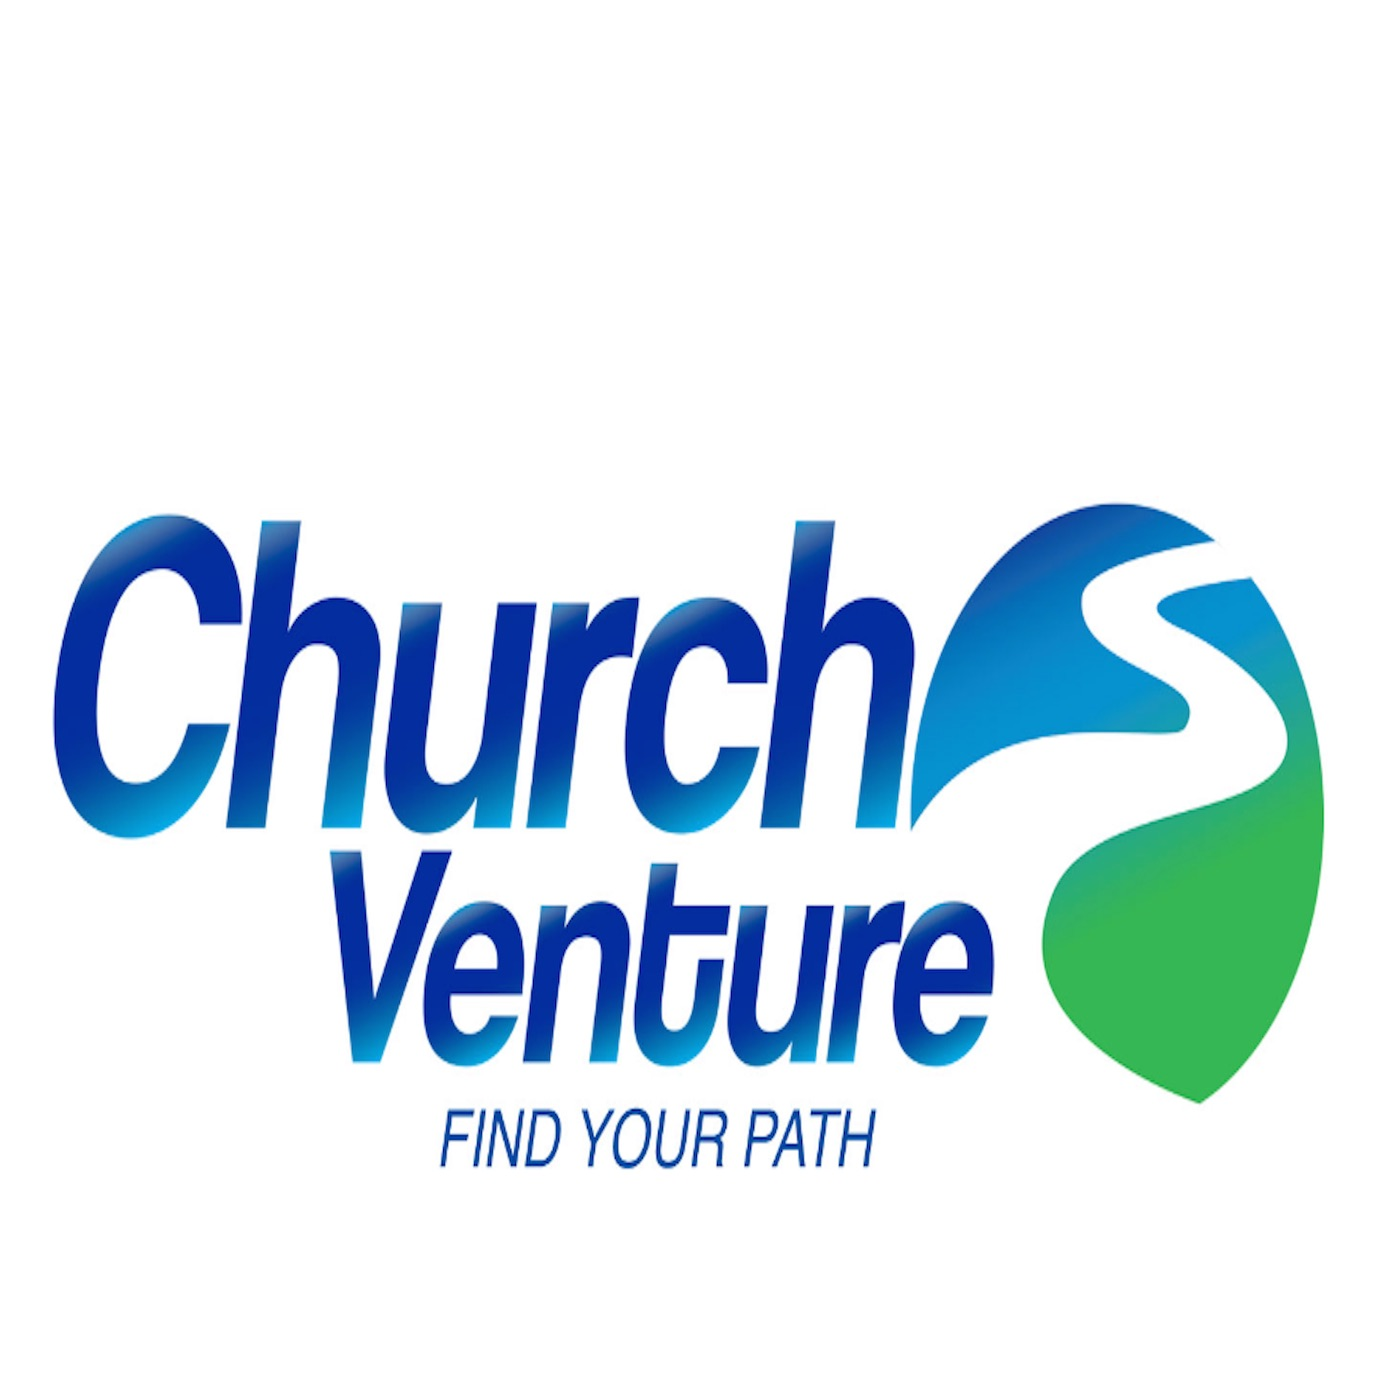 Messages & Video - Church Venture